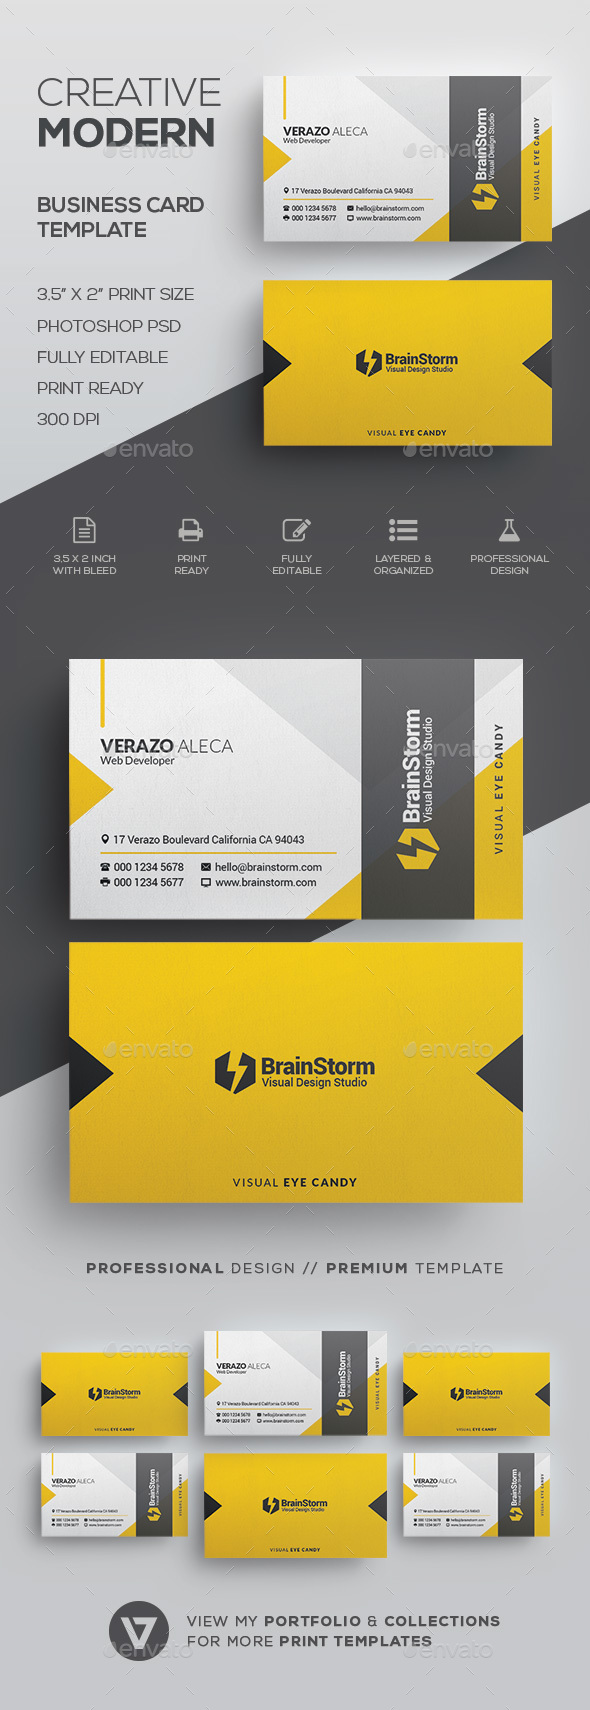 Creative modern business card template by verazo graphicriver creative modern business card template corporate business cards cheaphphosting Image collections